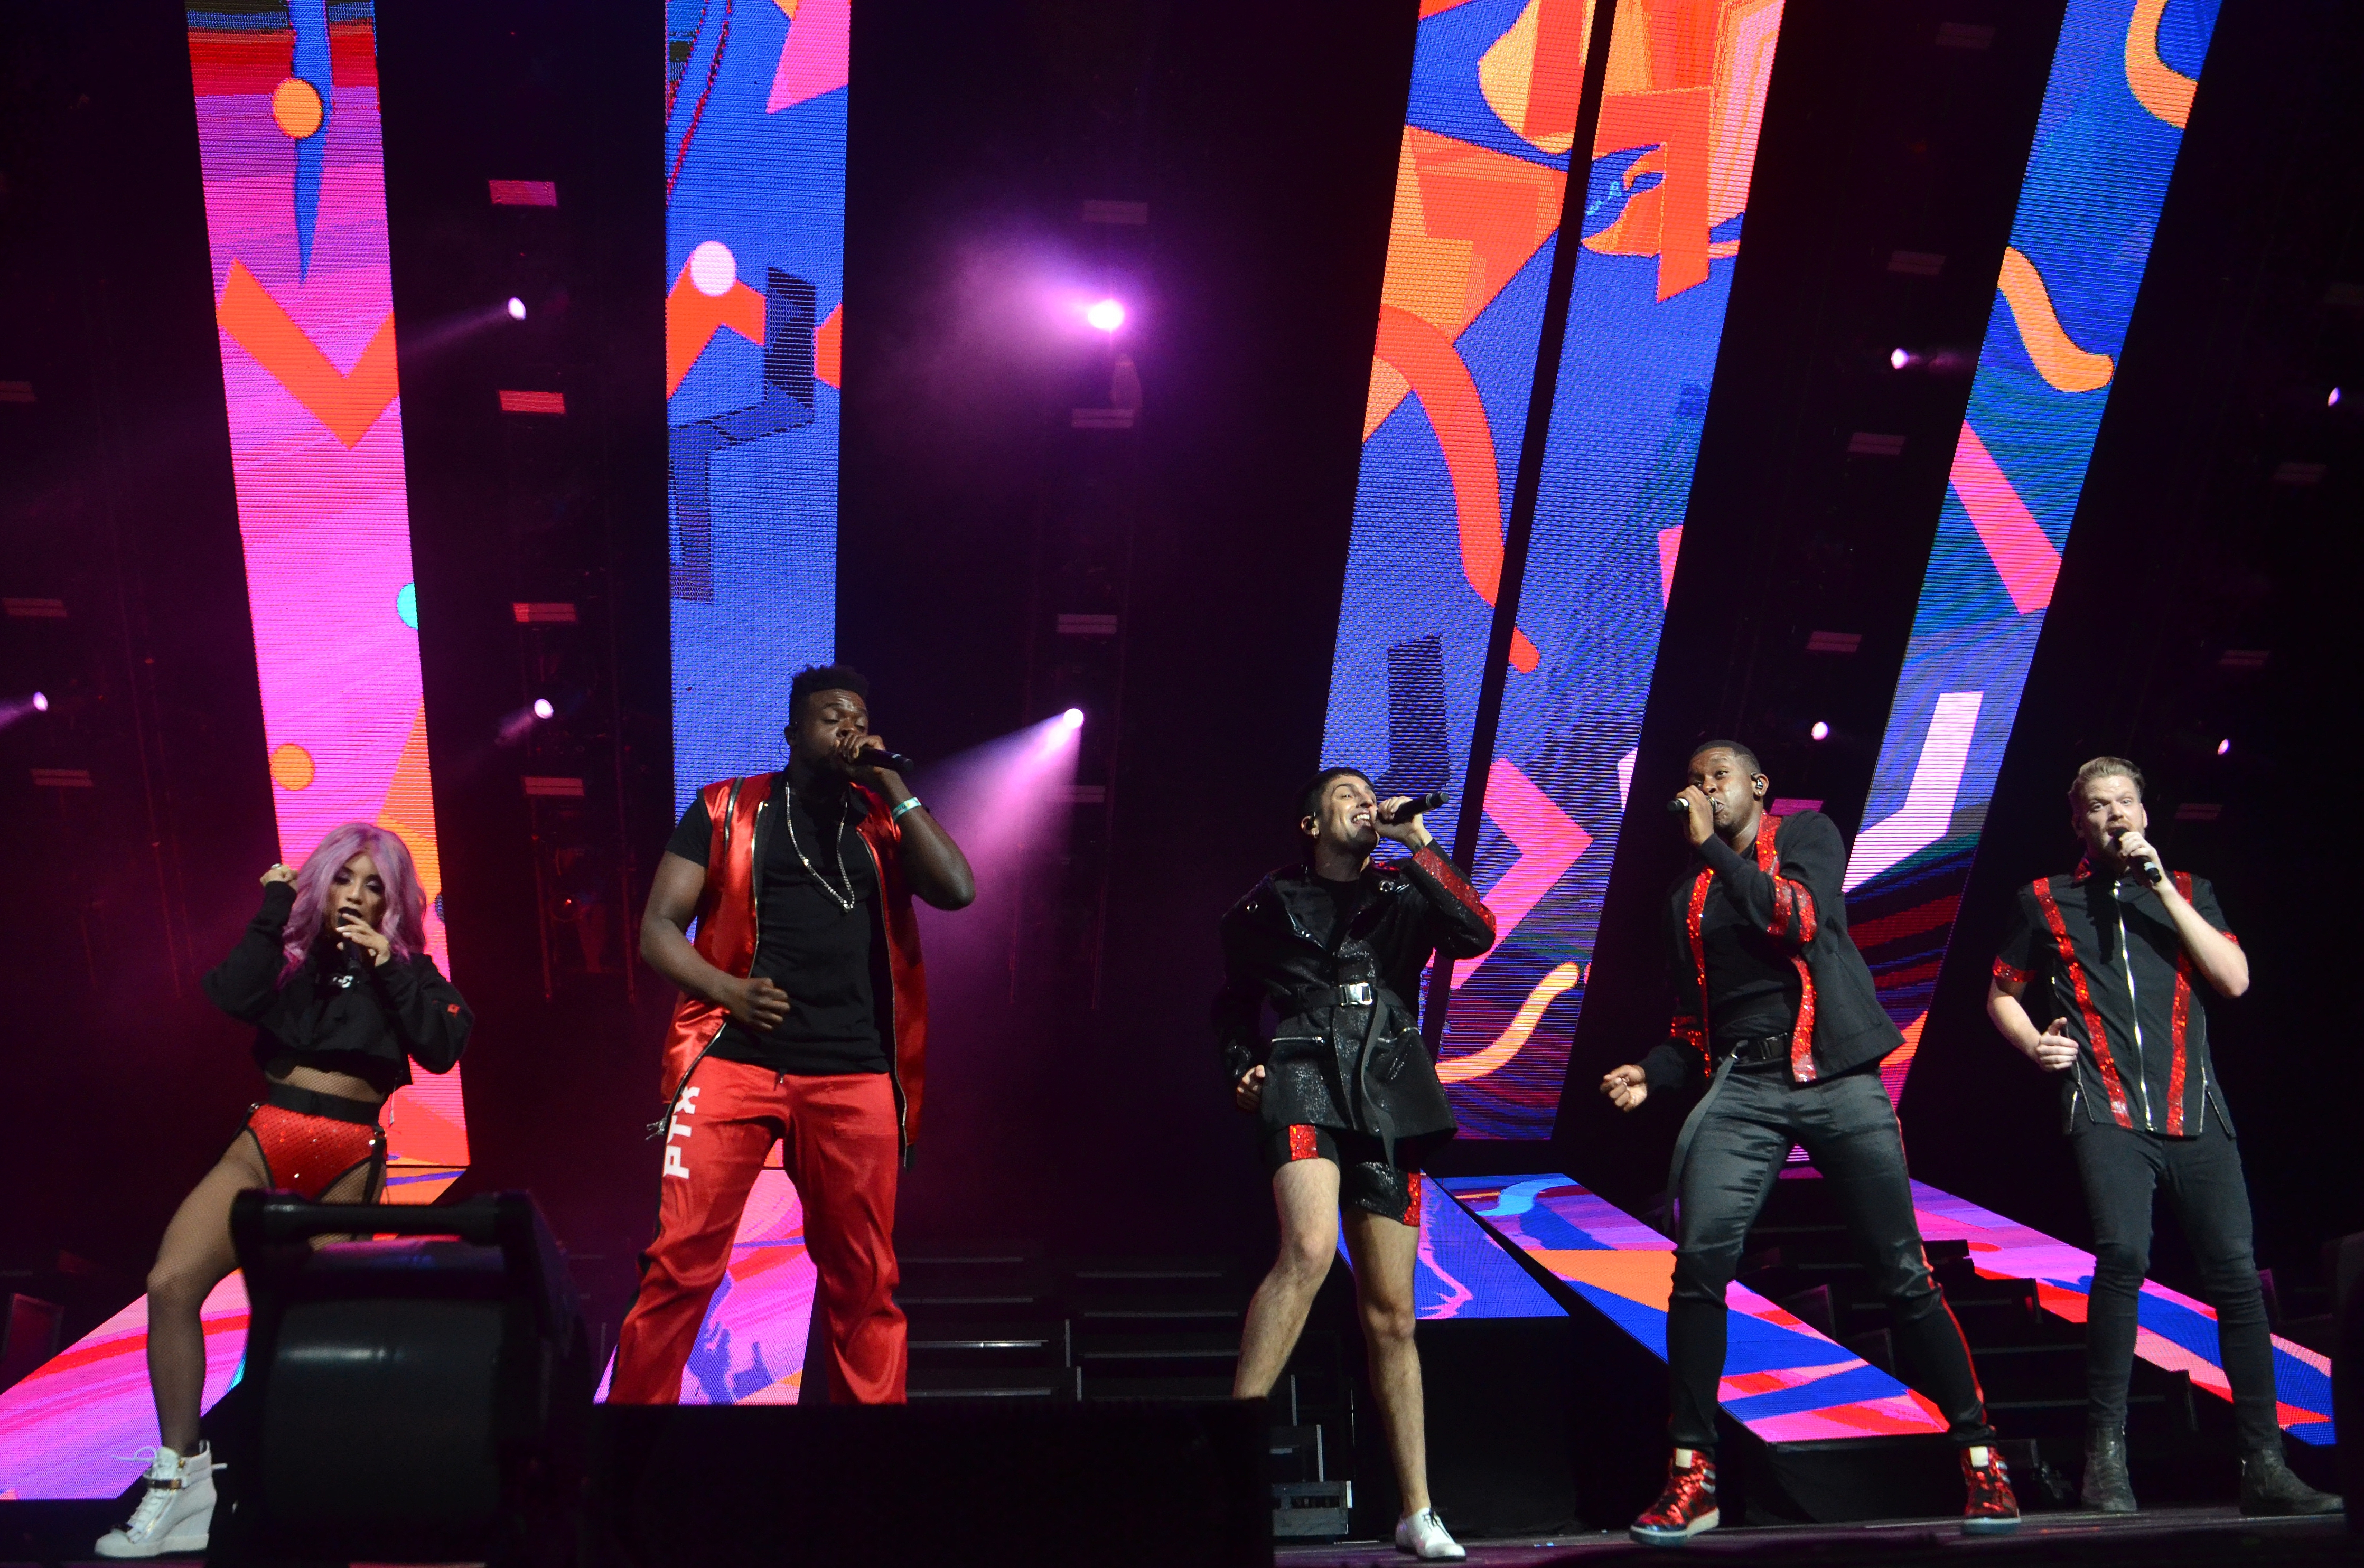 Concert Review Pentatonix Show Inspires Crowd To Go And Chase Your